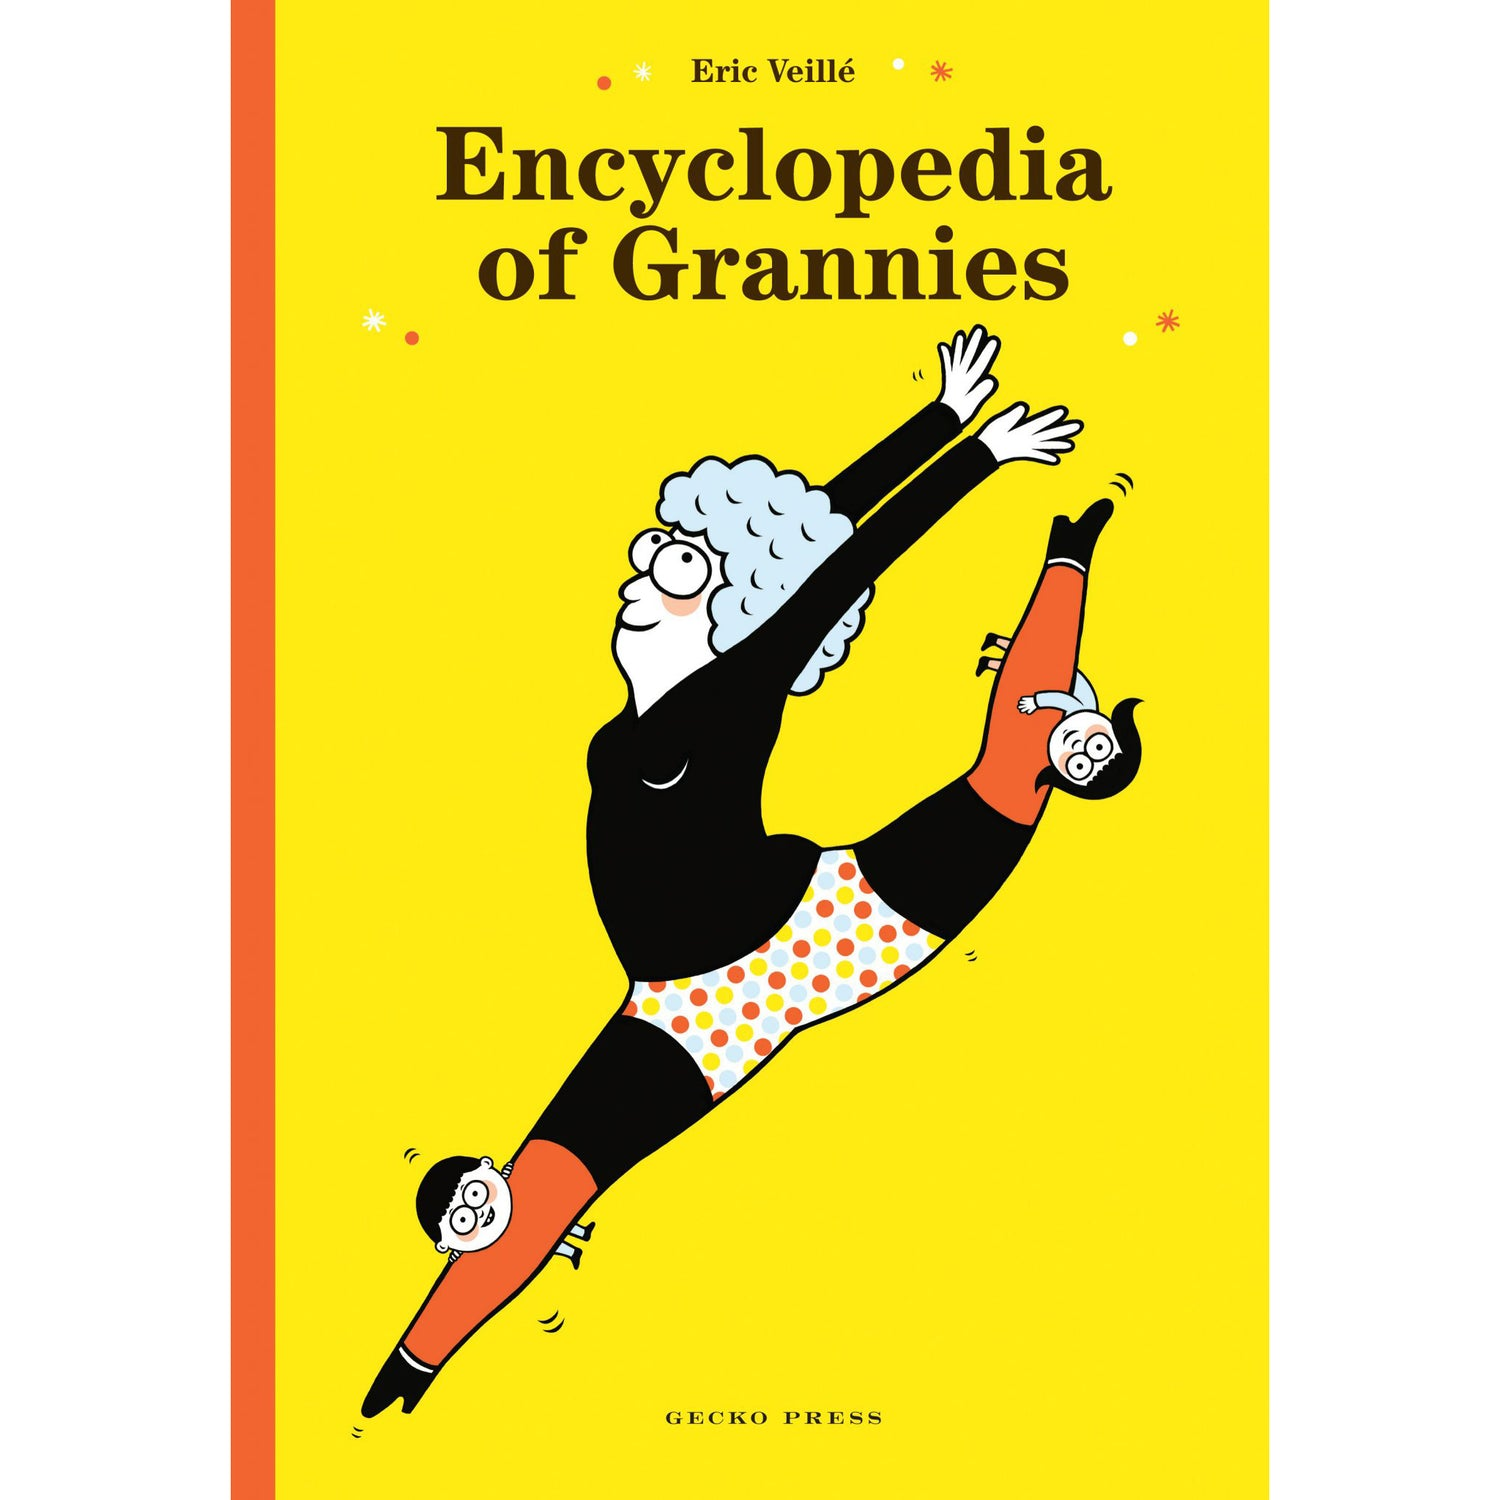 Encyclopedia of Grannies Author: Eric Veillé